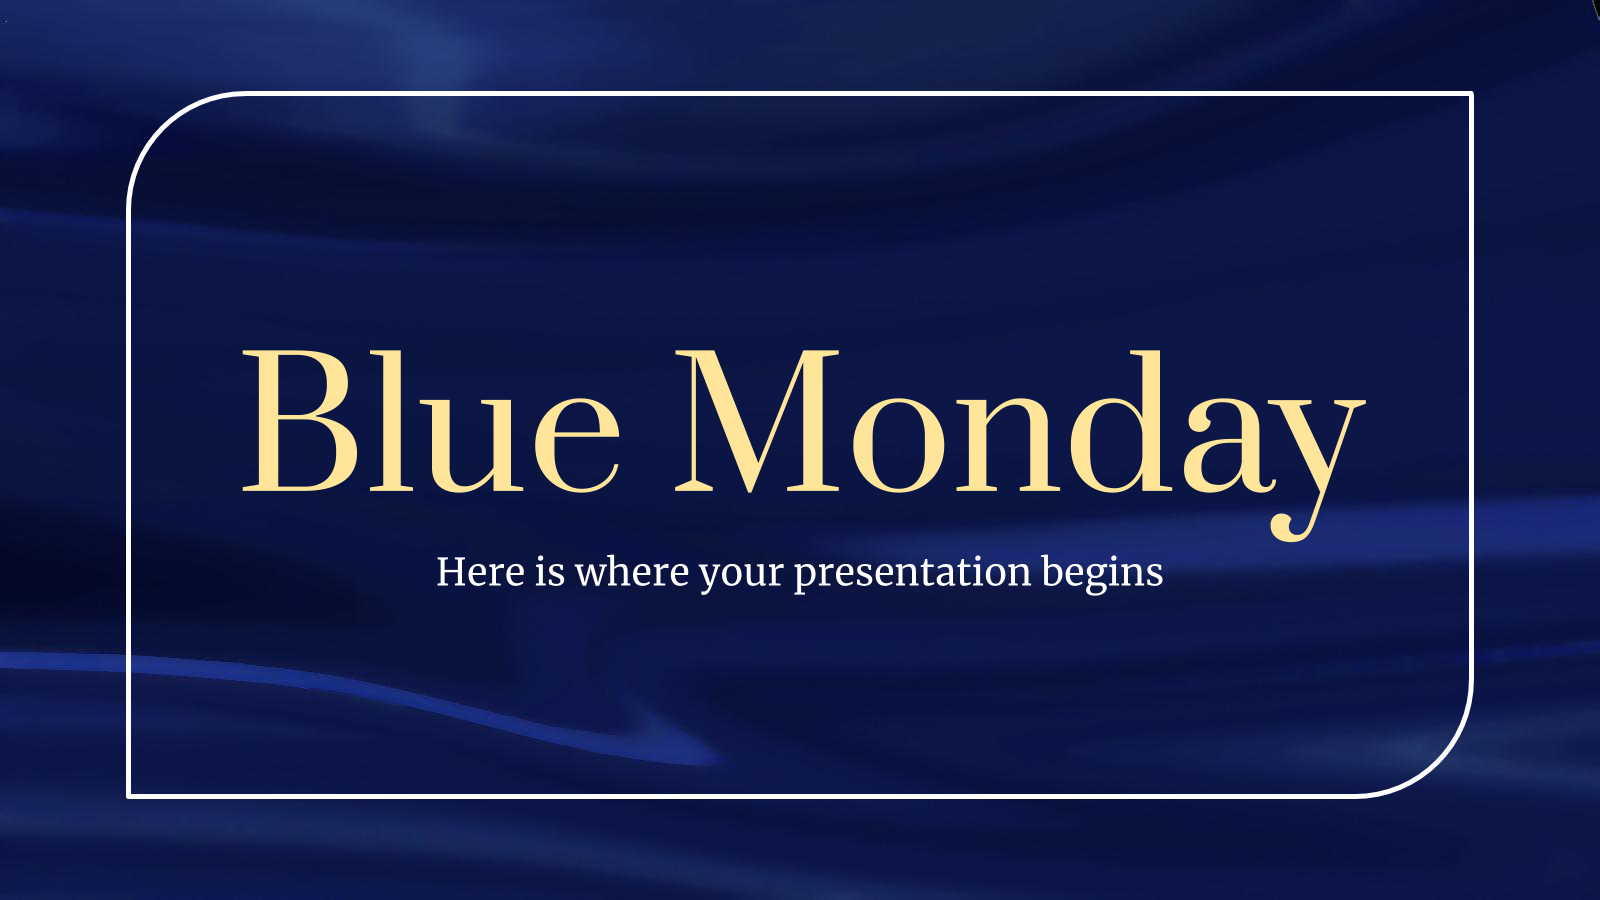 Blue Monday presentation template